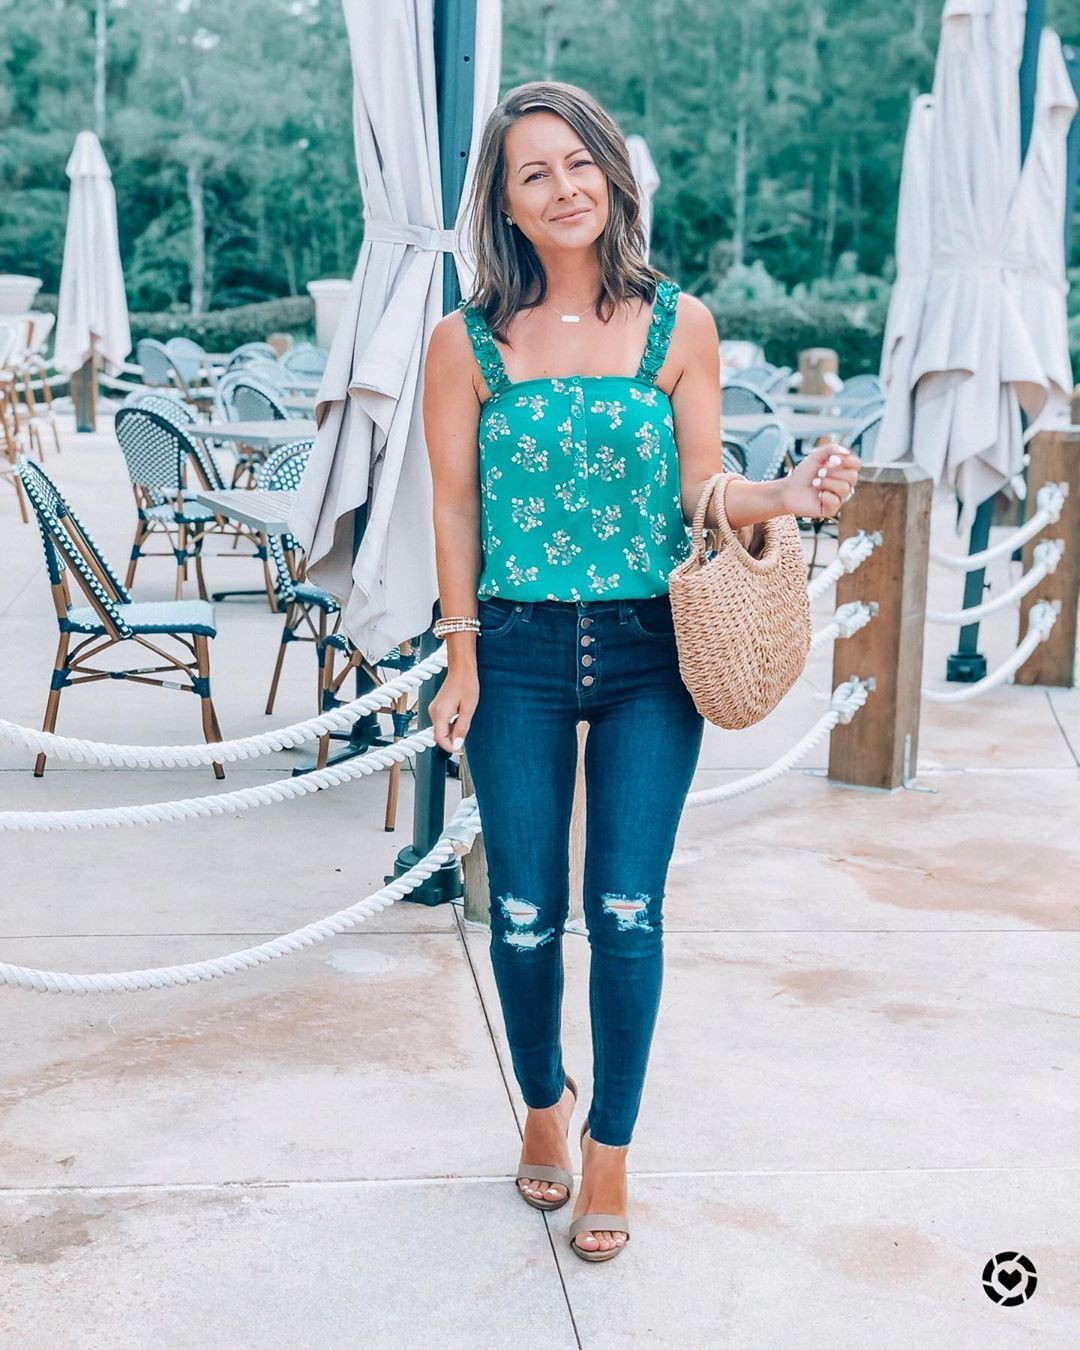 Turquoise and white colour outfit ideas 2020 with leggings, denim, jeans